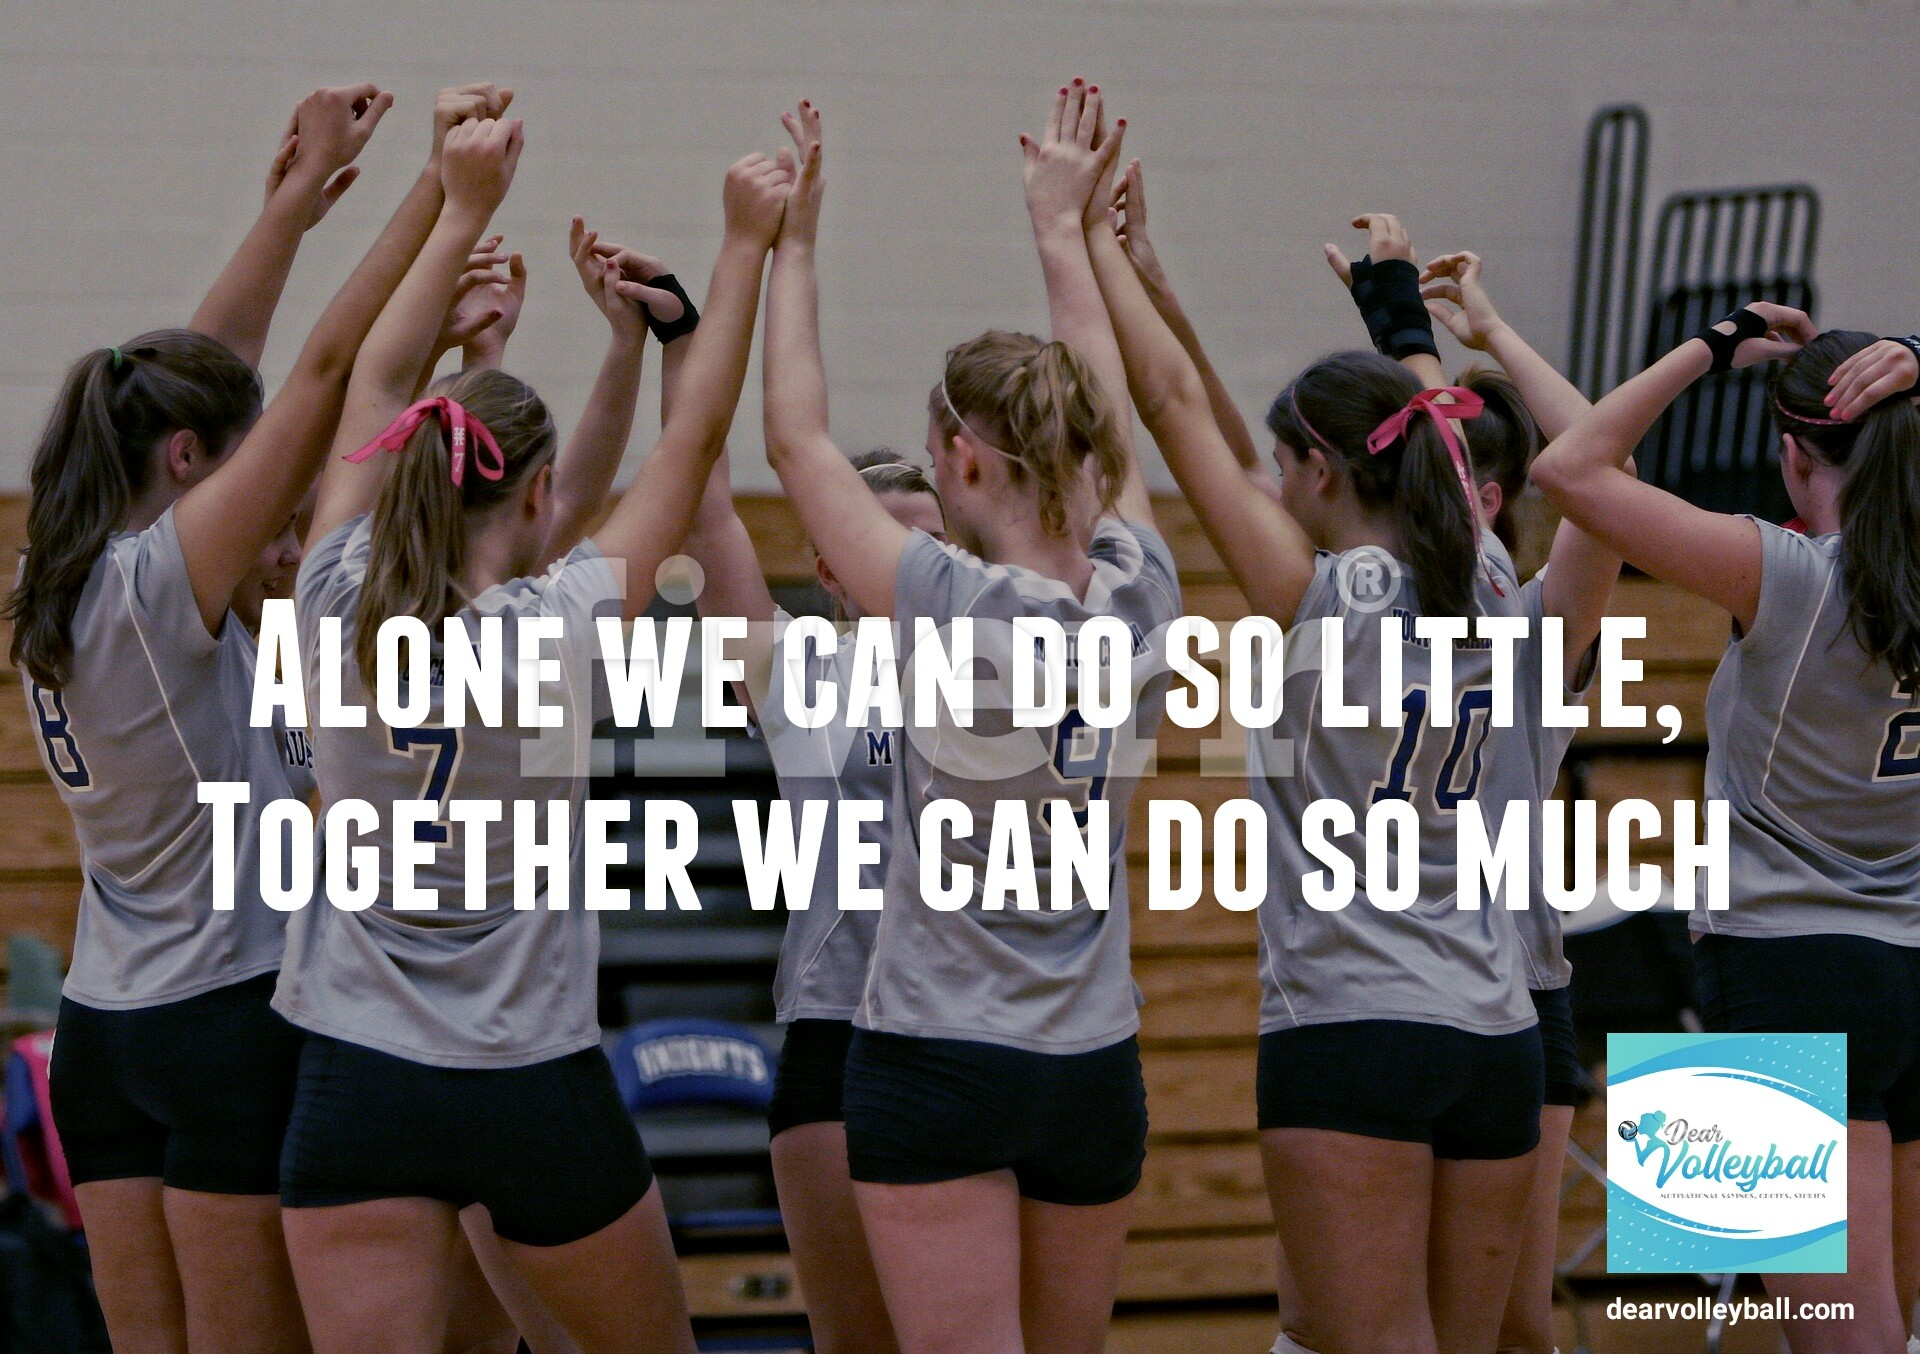 Alone we can do so little together we can do so much and 54 short inspirational quotes on DearVolleyball.com